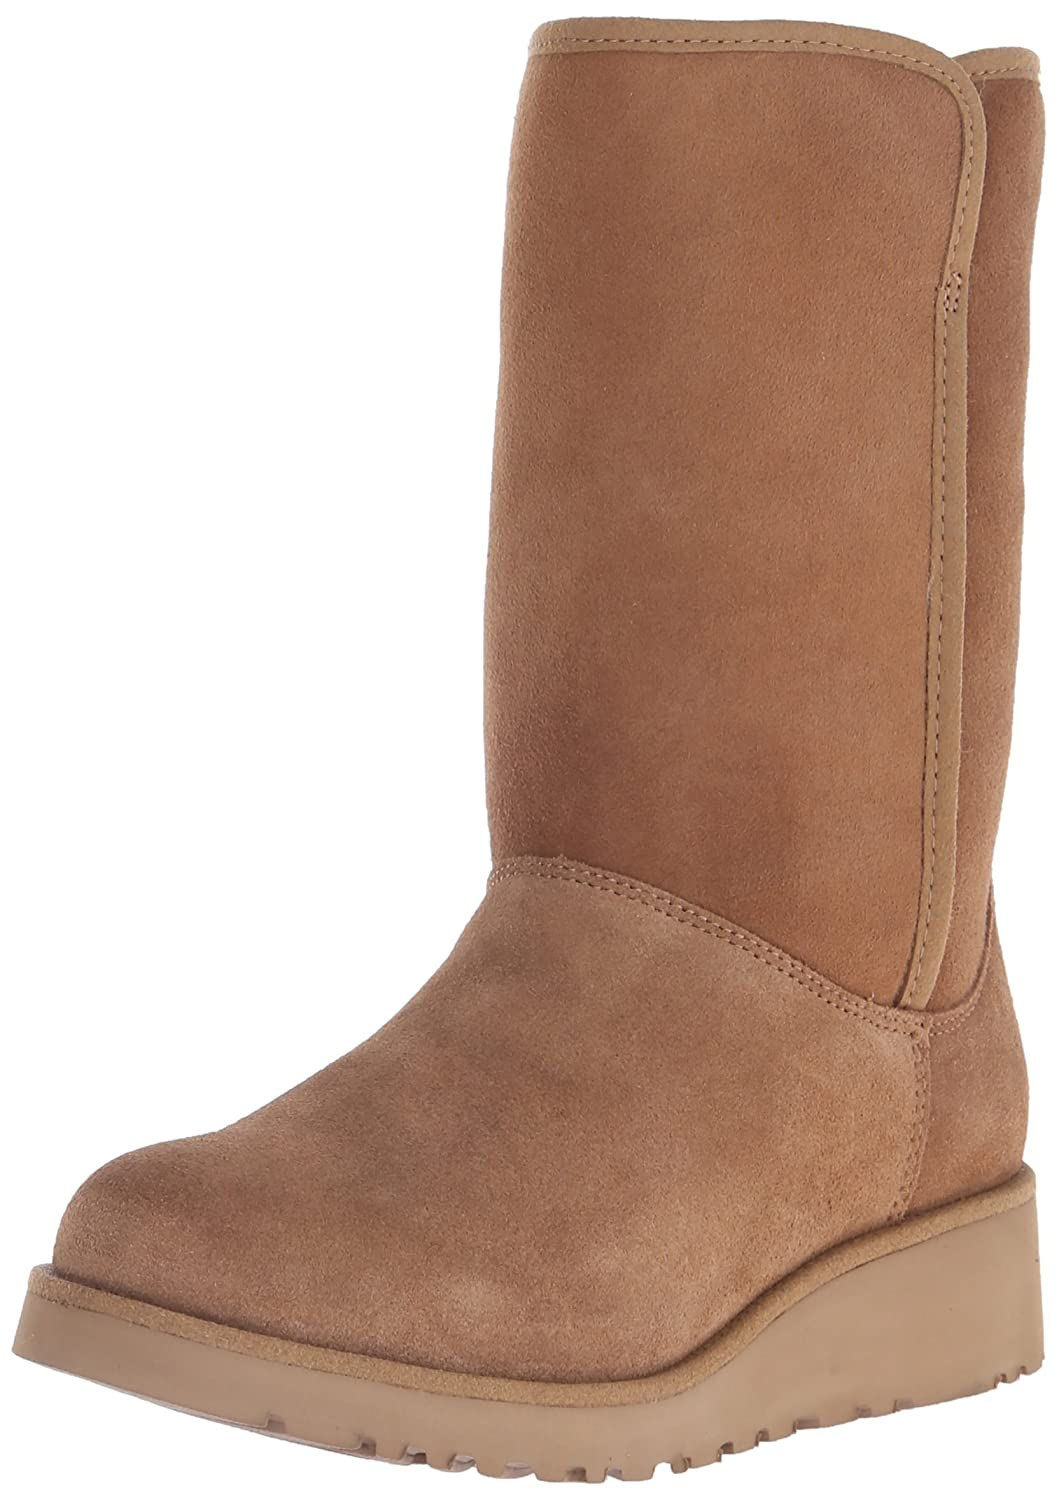 9c85e9288d0 UGG Women's Amie Winter Boot